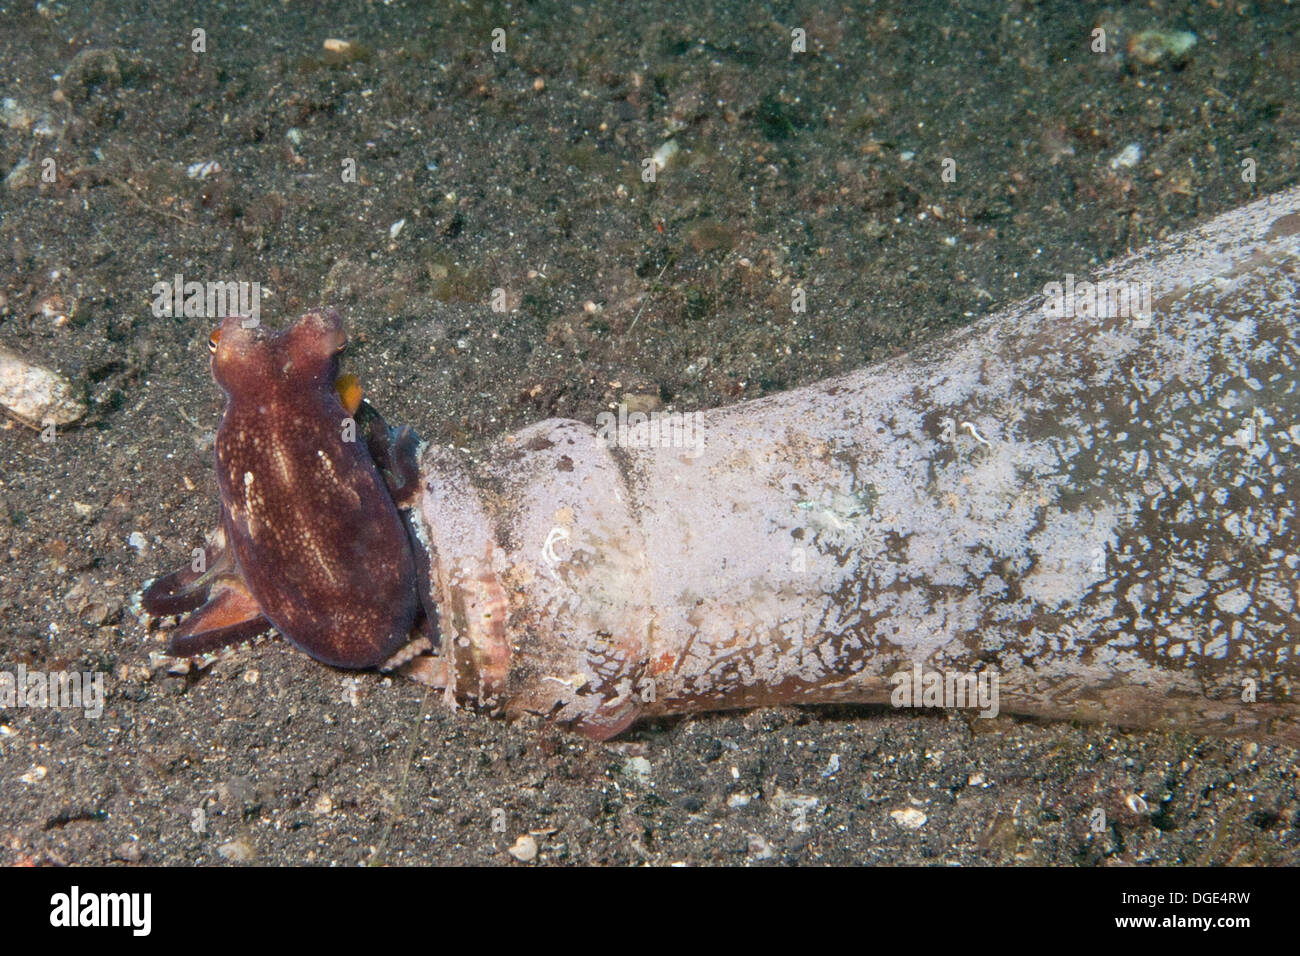 Tiny Octopus makes it's home in an empty bottle on the ocean floor.(Octopus sp.).Lembeh Straits, Indonesia - Stock Image